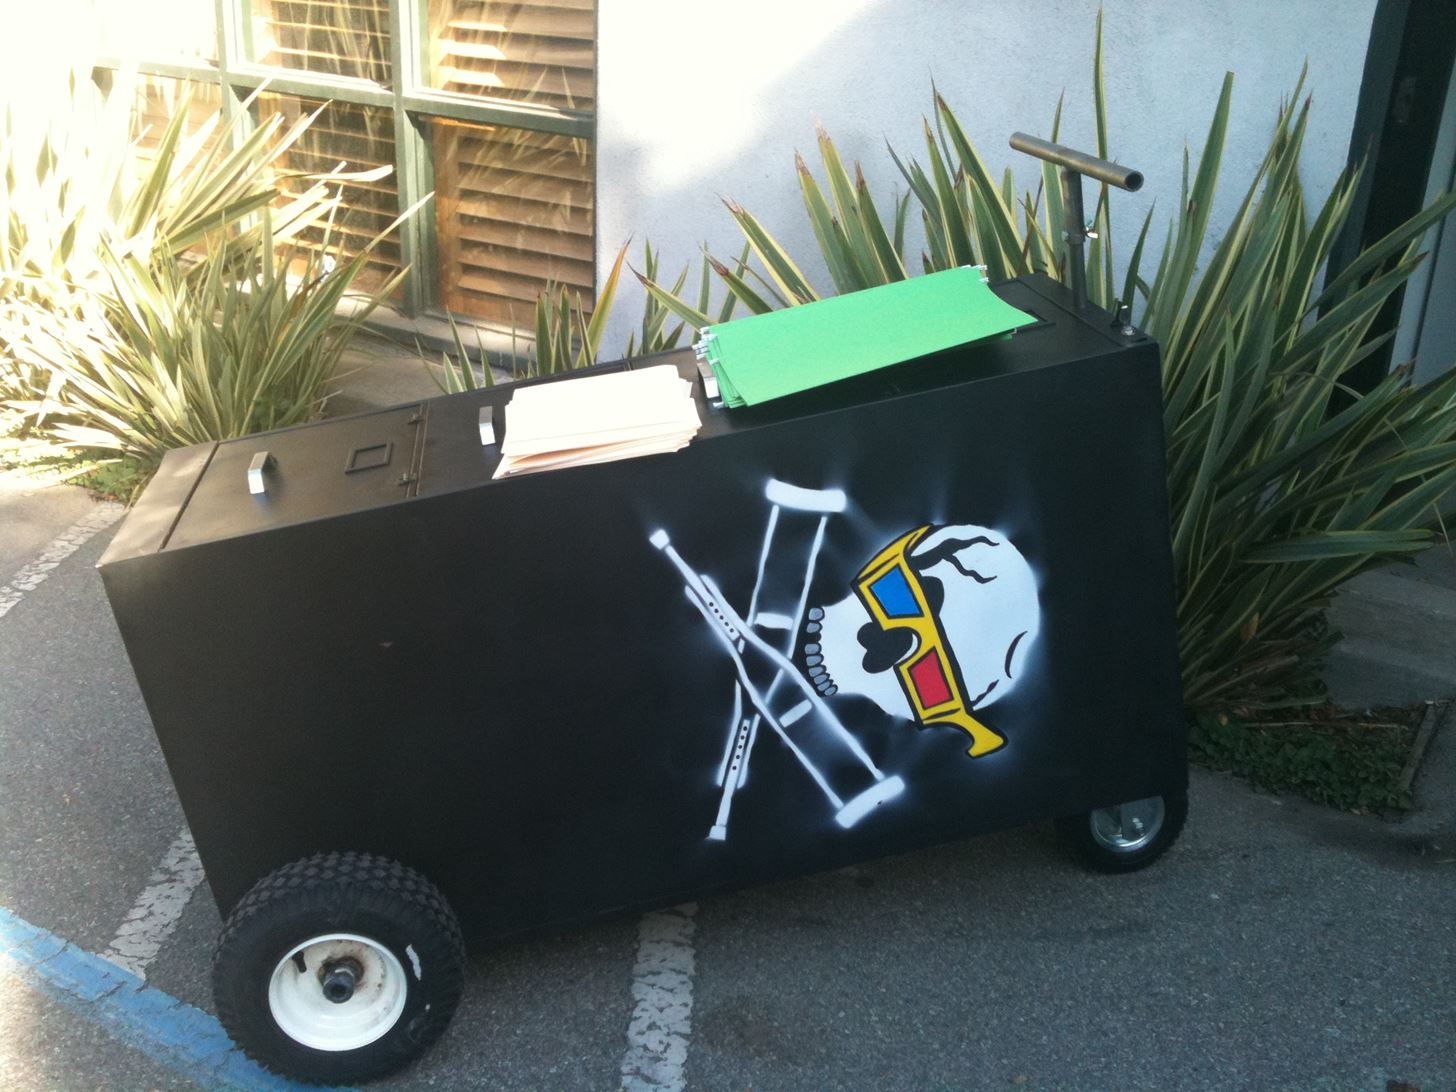 Special Delivery Mod: Dude Submits 25 MPH Motorized File Cabinet